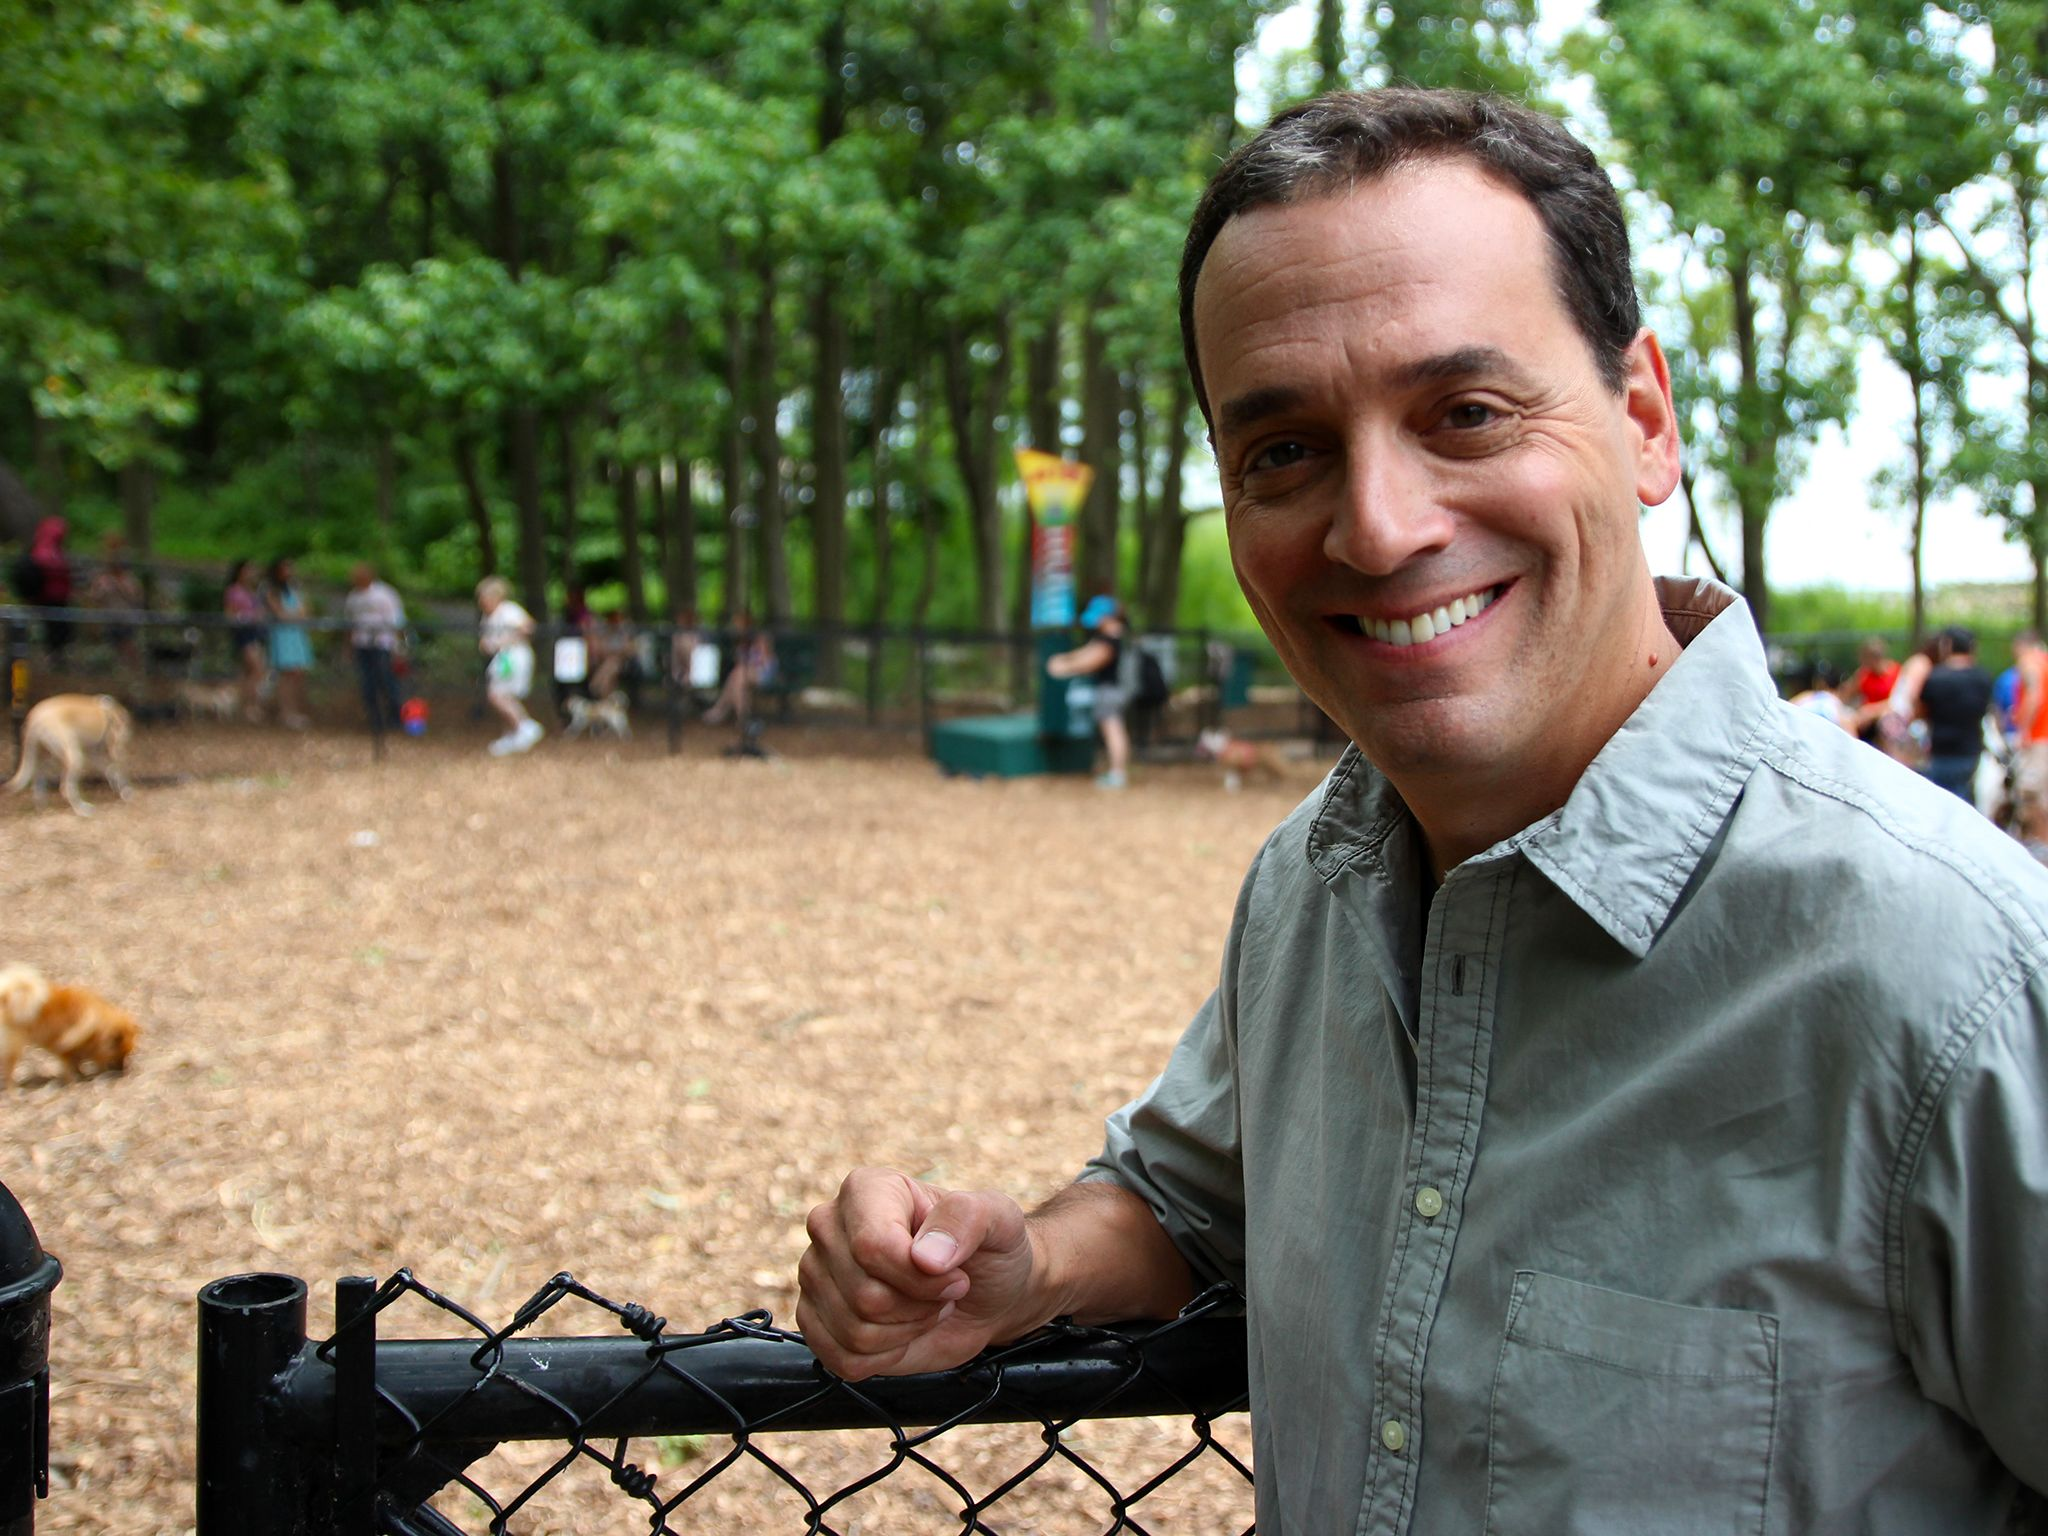 Staten Island, NY, USA: Presenter Daniel Pink heads to a dog park to see how the experiments are ... [Photo of the day - Novembro 2014]